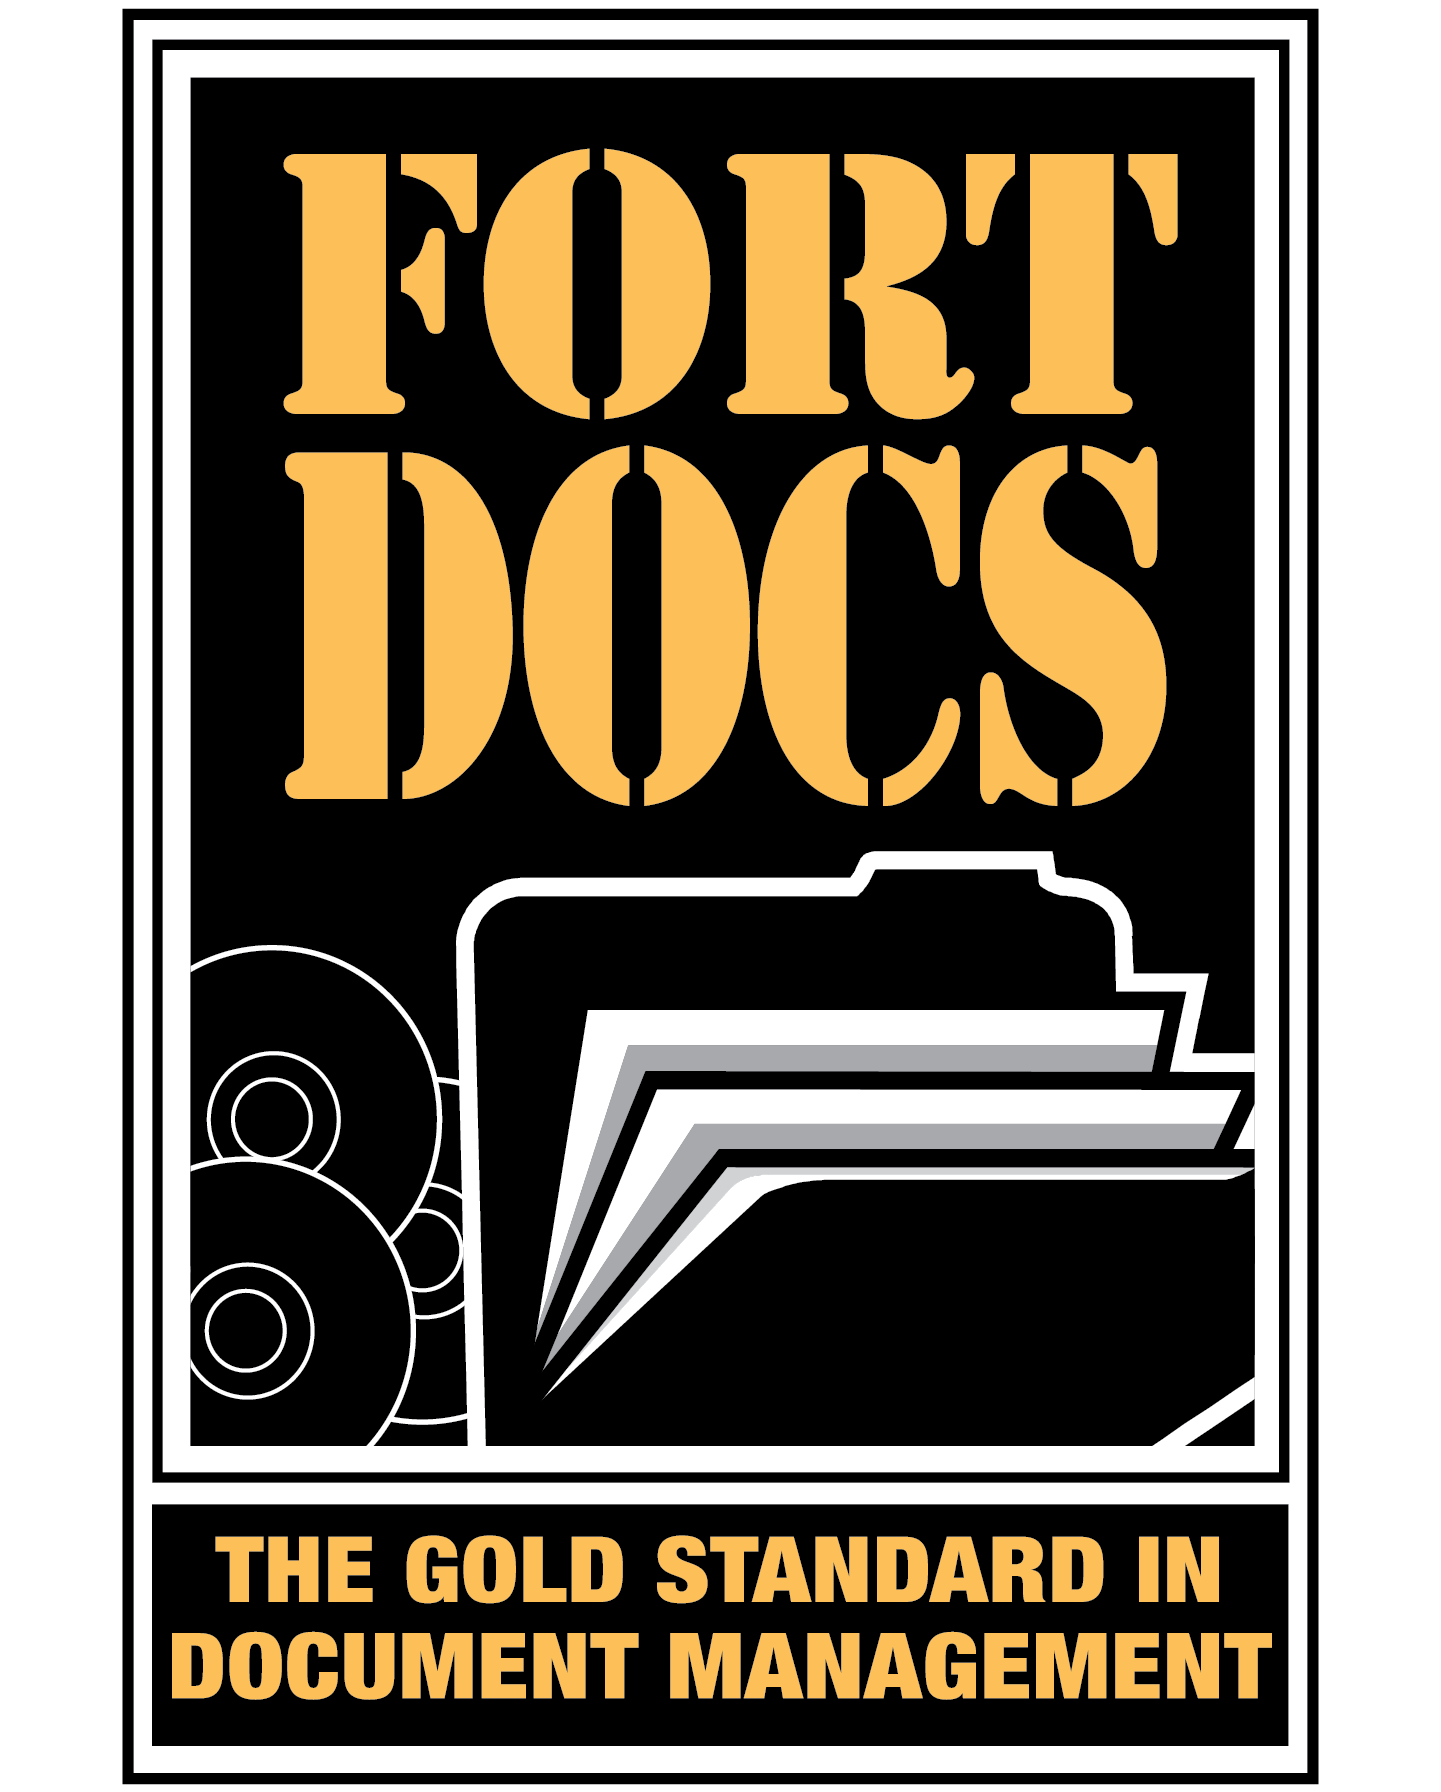 Fort Docs - Document Storage and Scanning